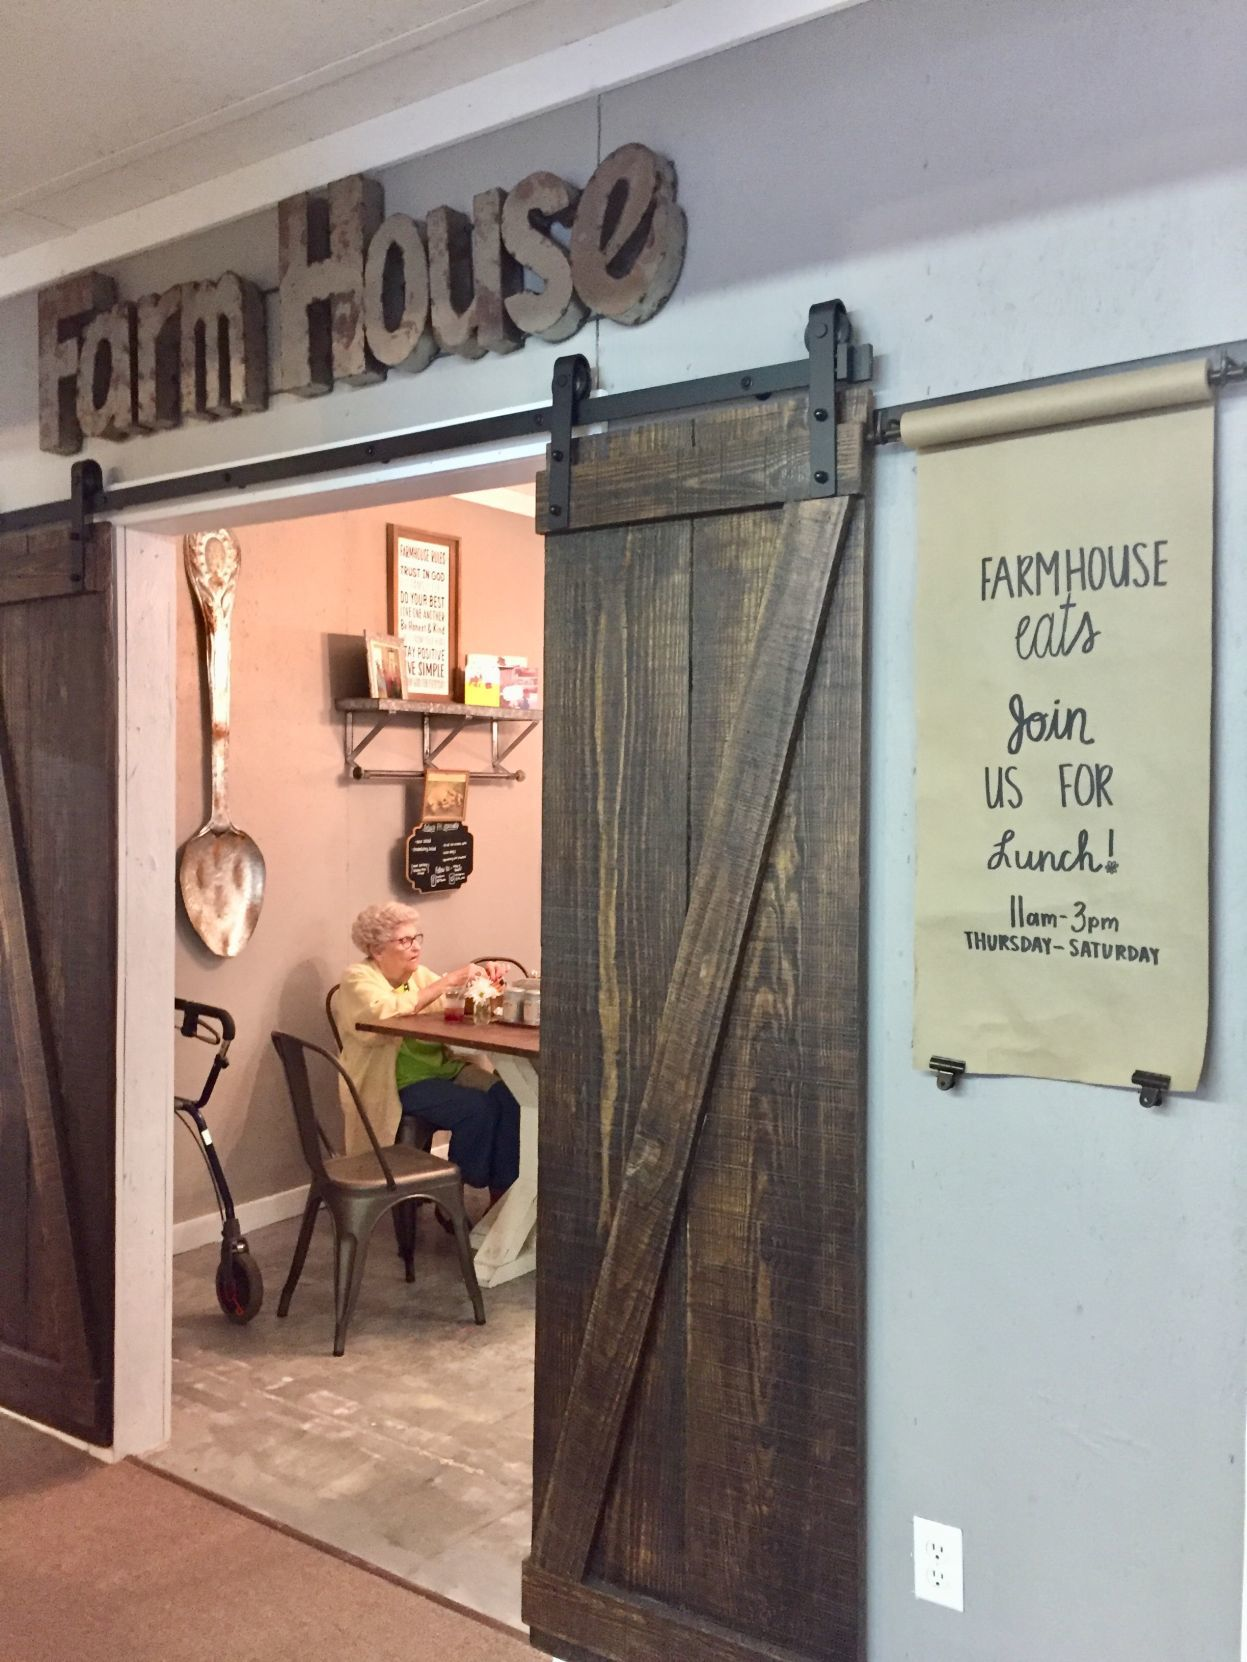 Farmhouse Eats Is A Small Cafe Inside Through The Garden Gates Antiques, A  Sprawling Antiques Shop Along U.S. 301 In Hanover County.